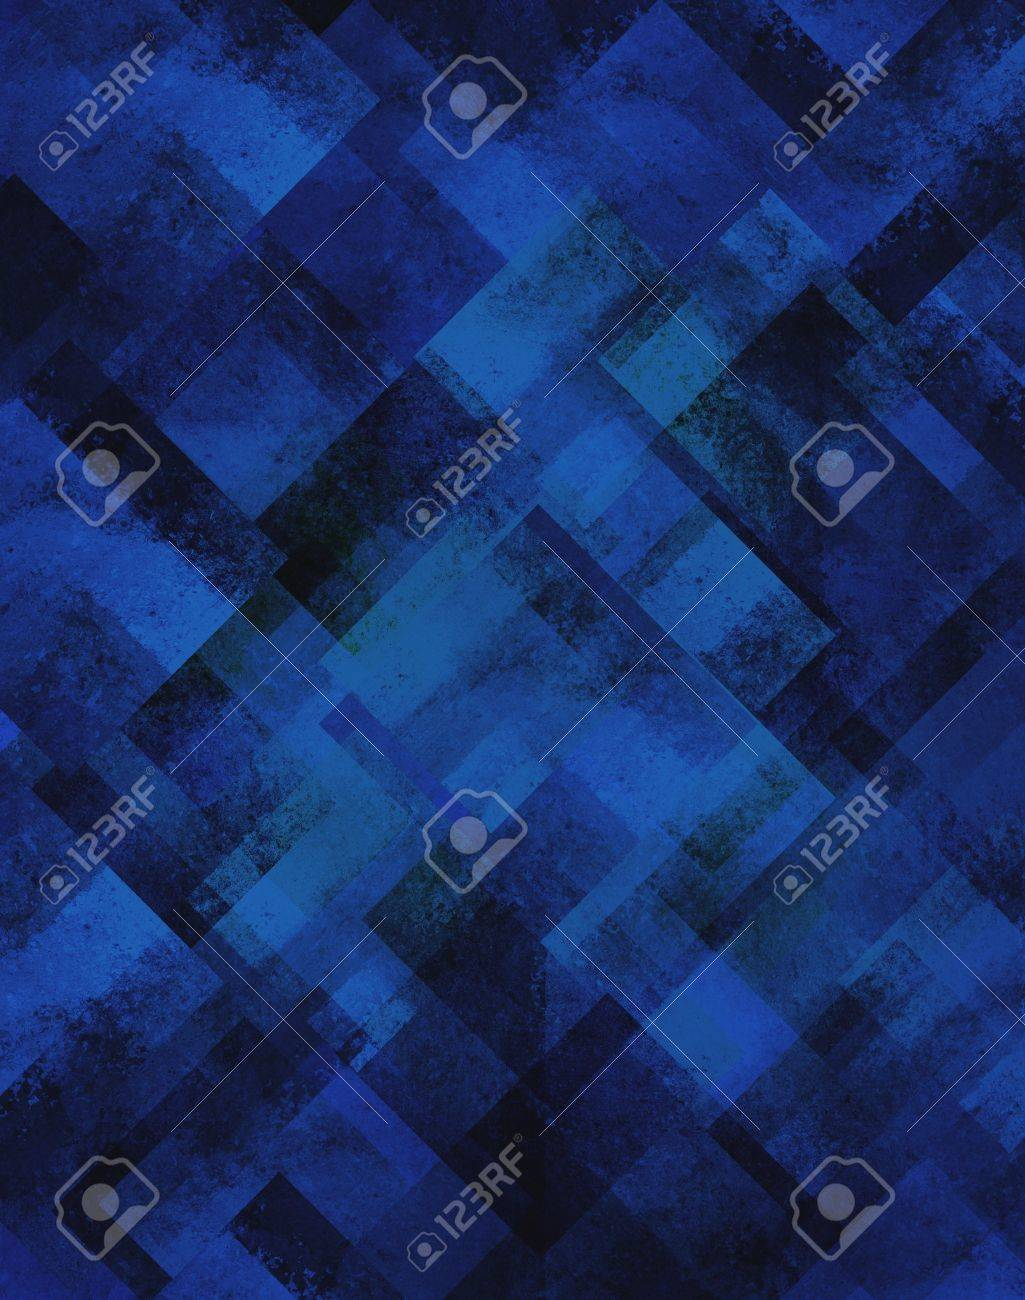 Abstract Blue Background Geometric Design Of Diamond Square Shapes